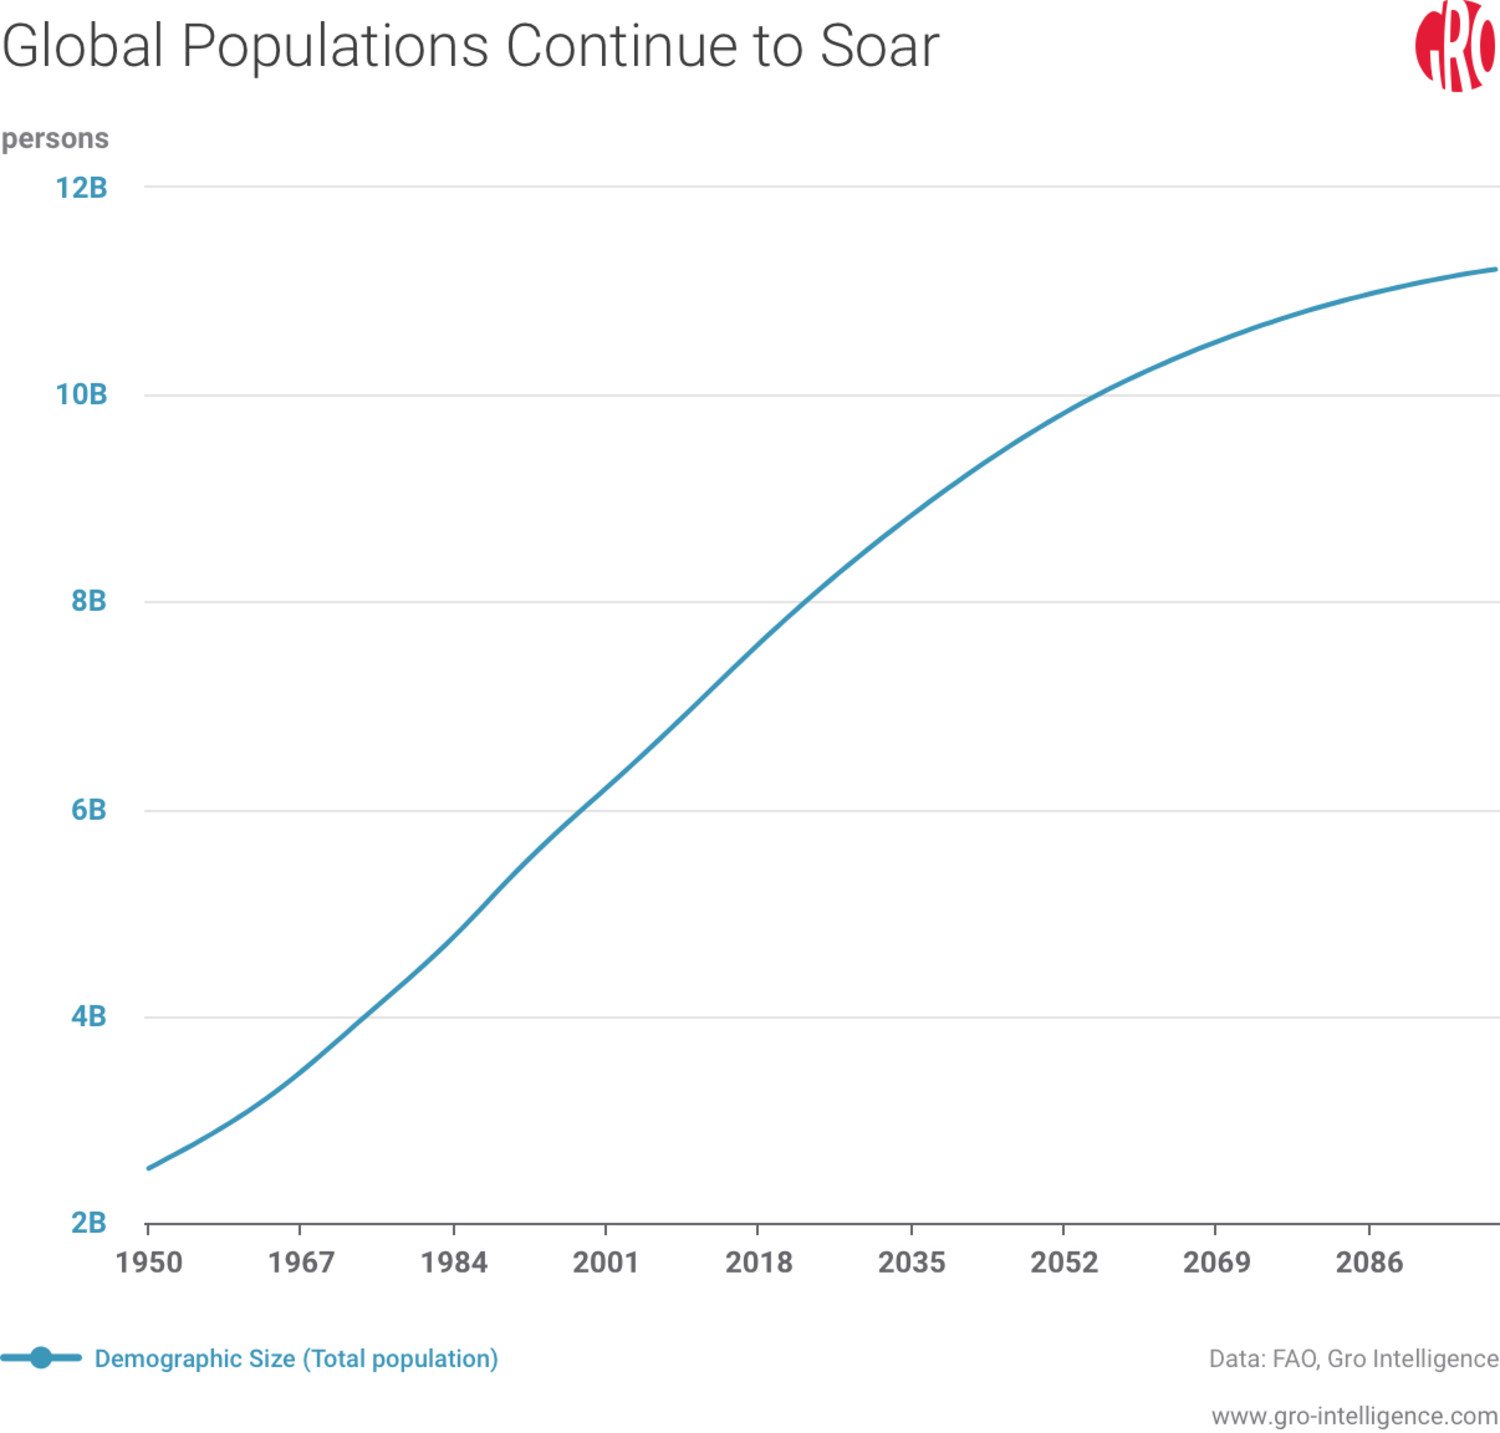 Global Populations Continue to Soar